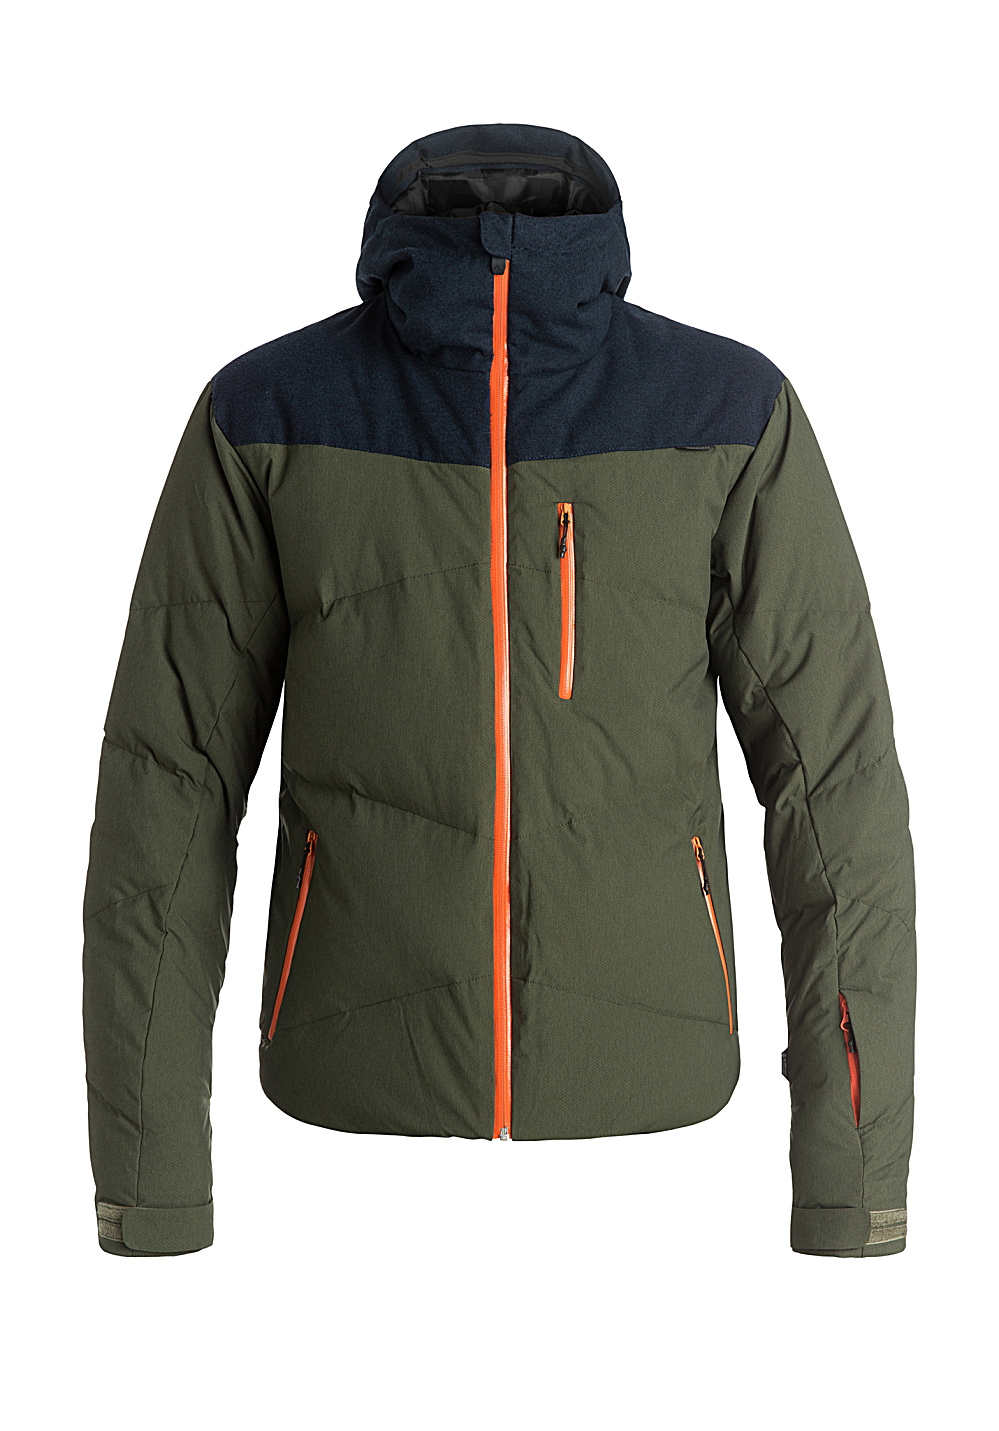 quiksilver ultimate veste de snowboard pour homme beige planet sports. Black Bedroom Furniture Sets. Home Design Ideas